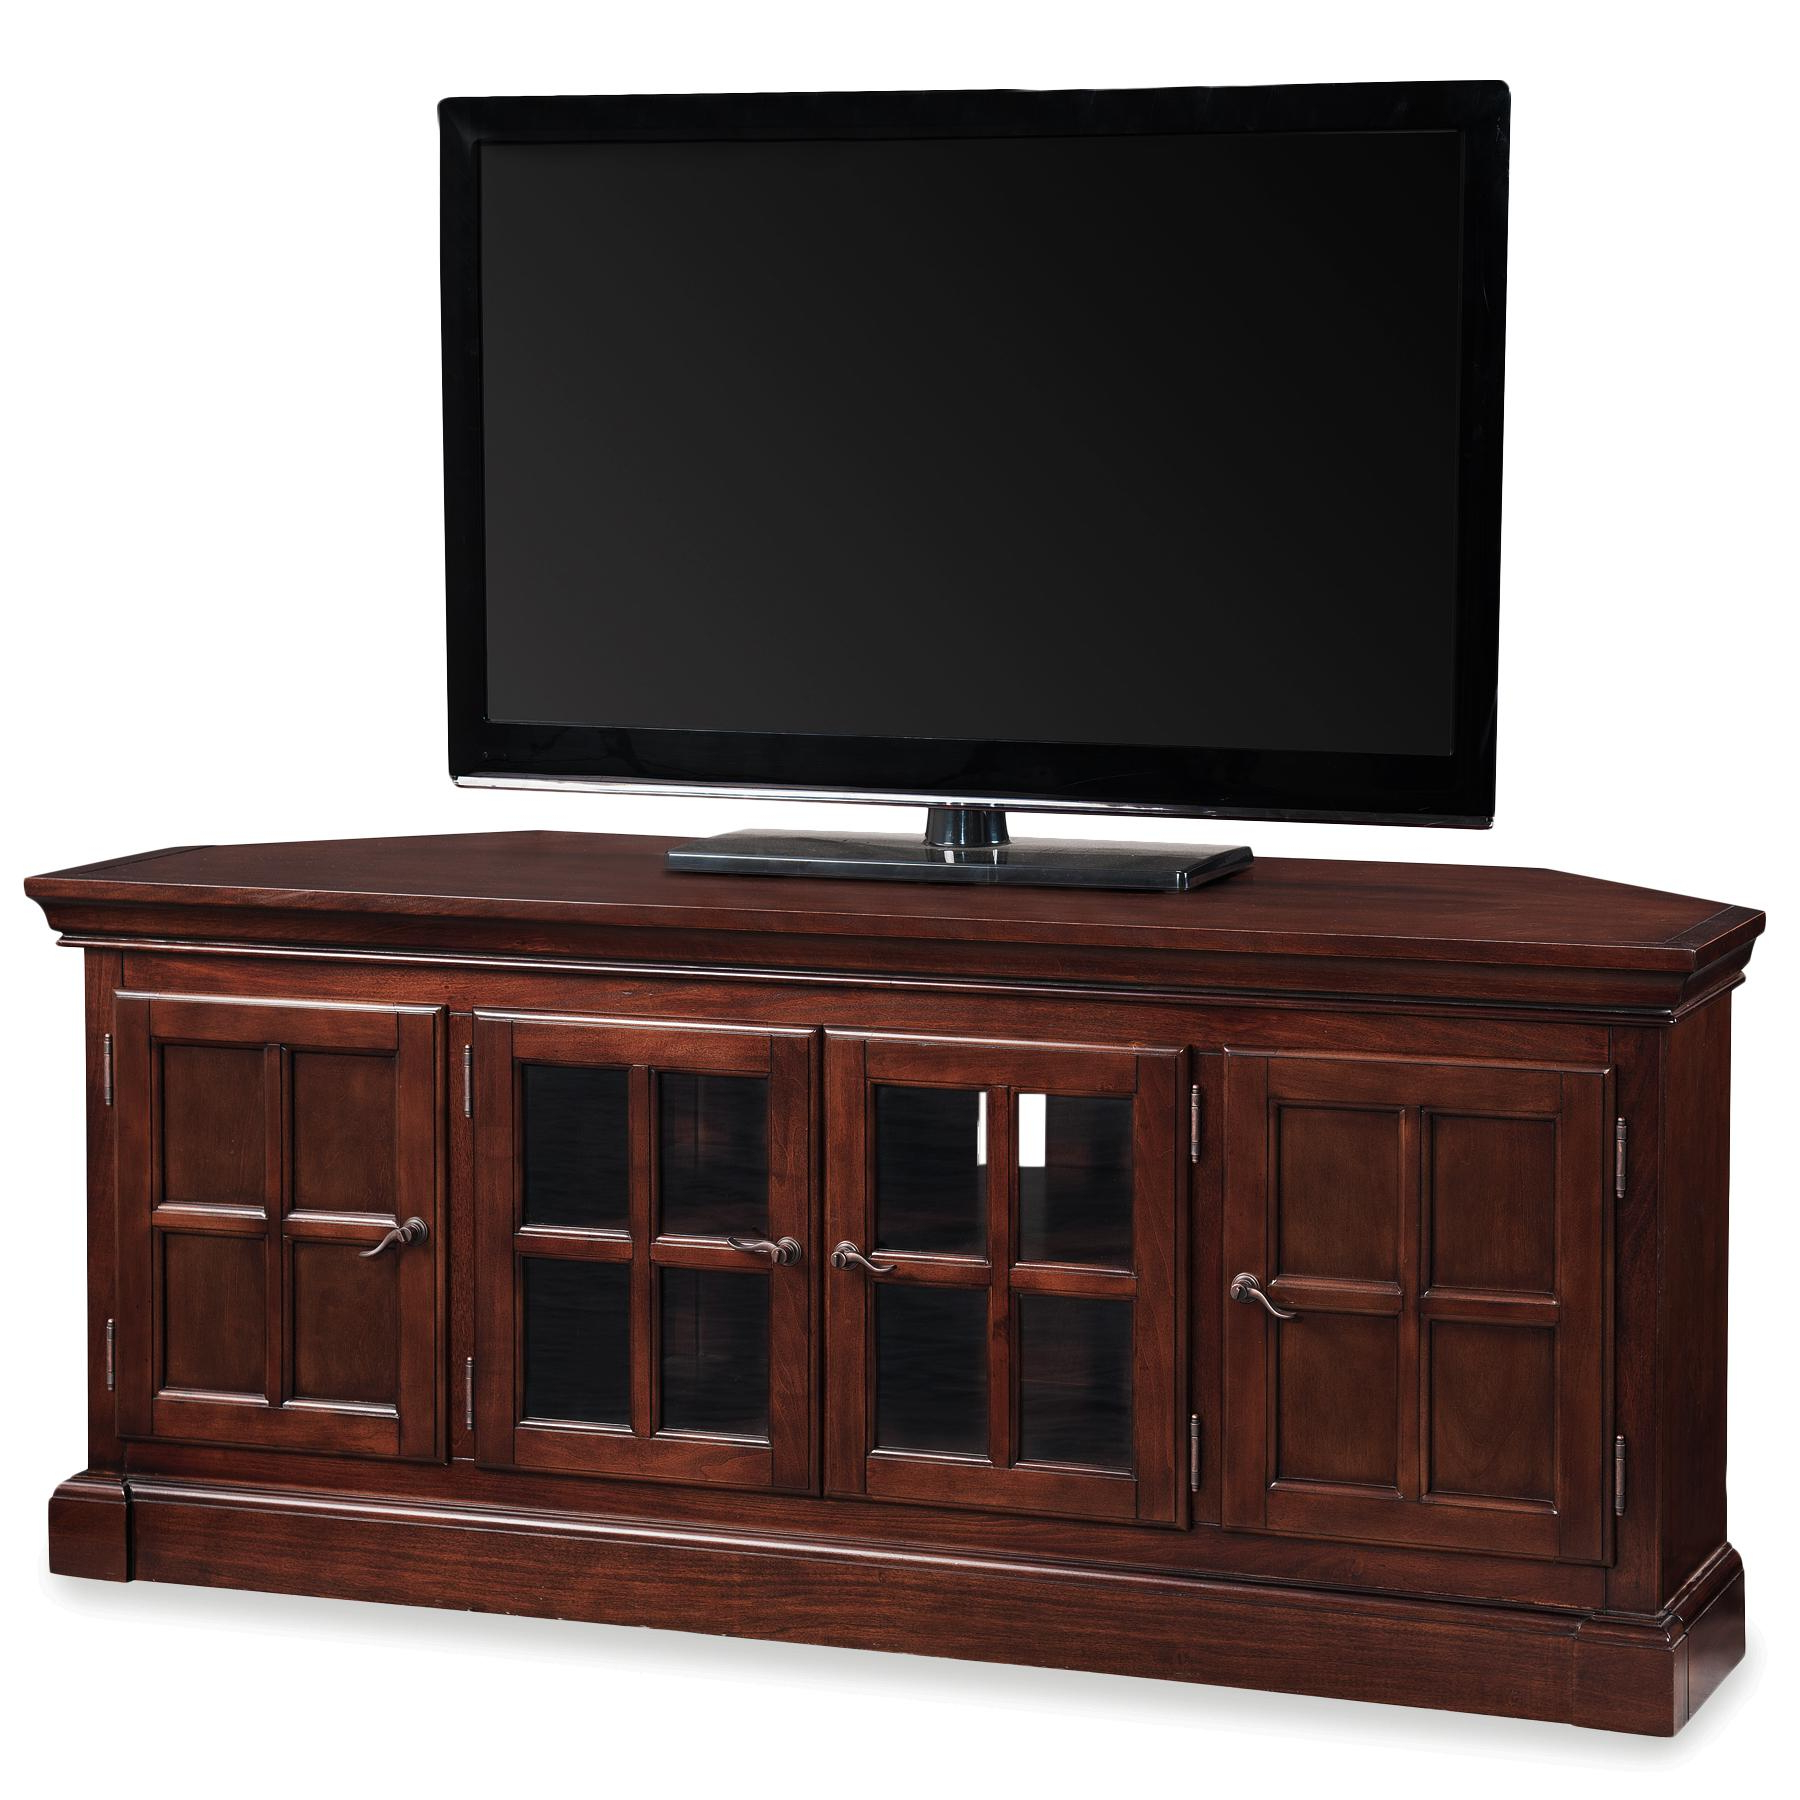 "2017 Amazon: Leick 81586 Bella Maison 56"" Corner Tv Stand With Lever With Tv Stands For Corner (View 8 of 20)"